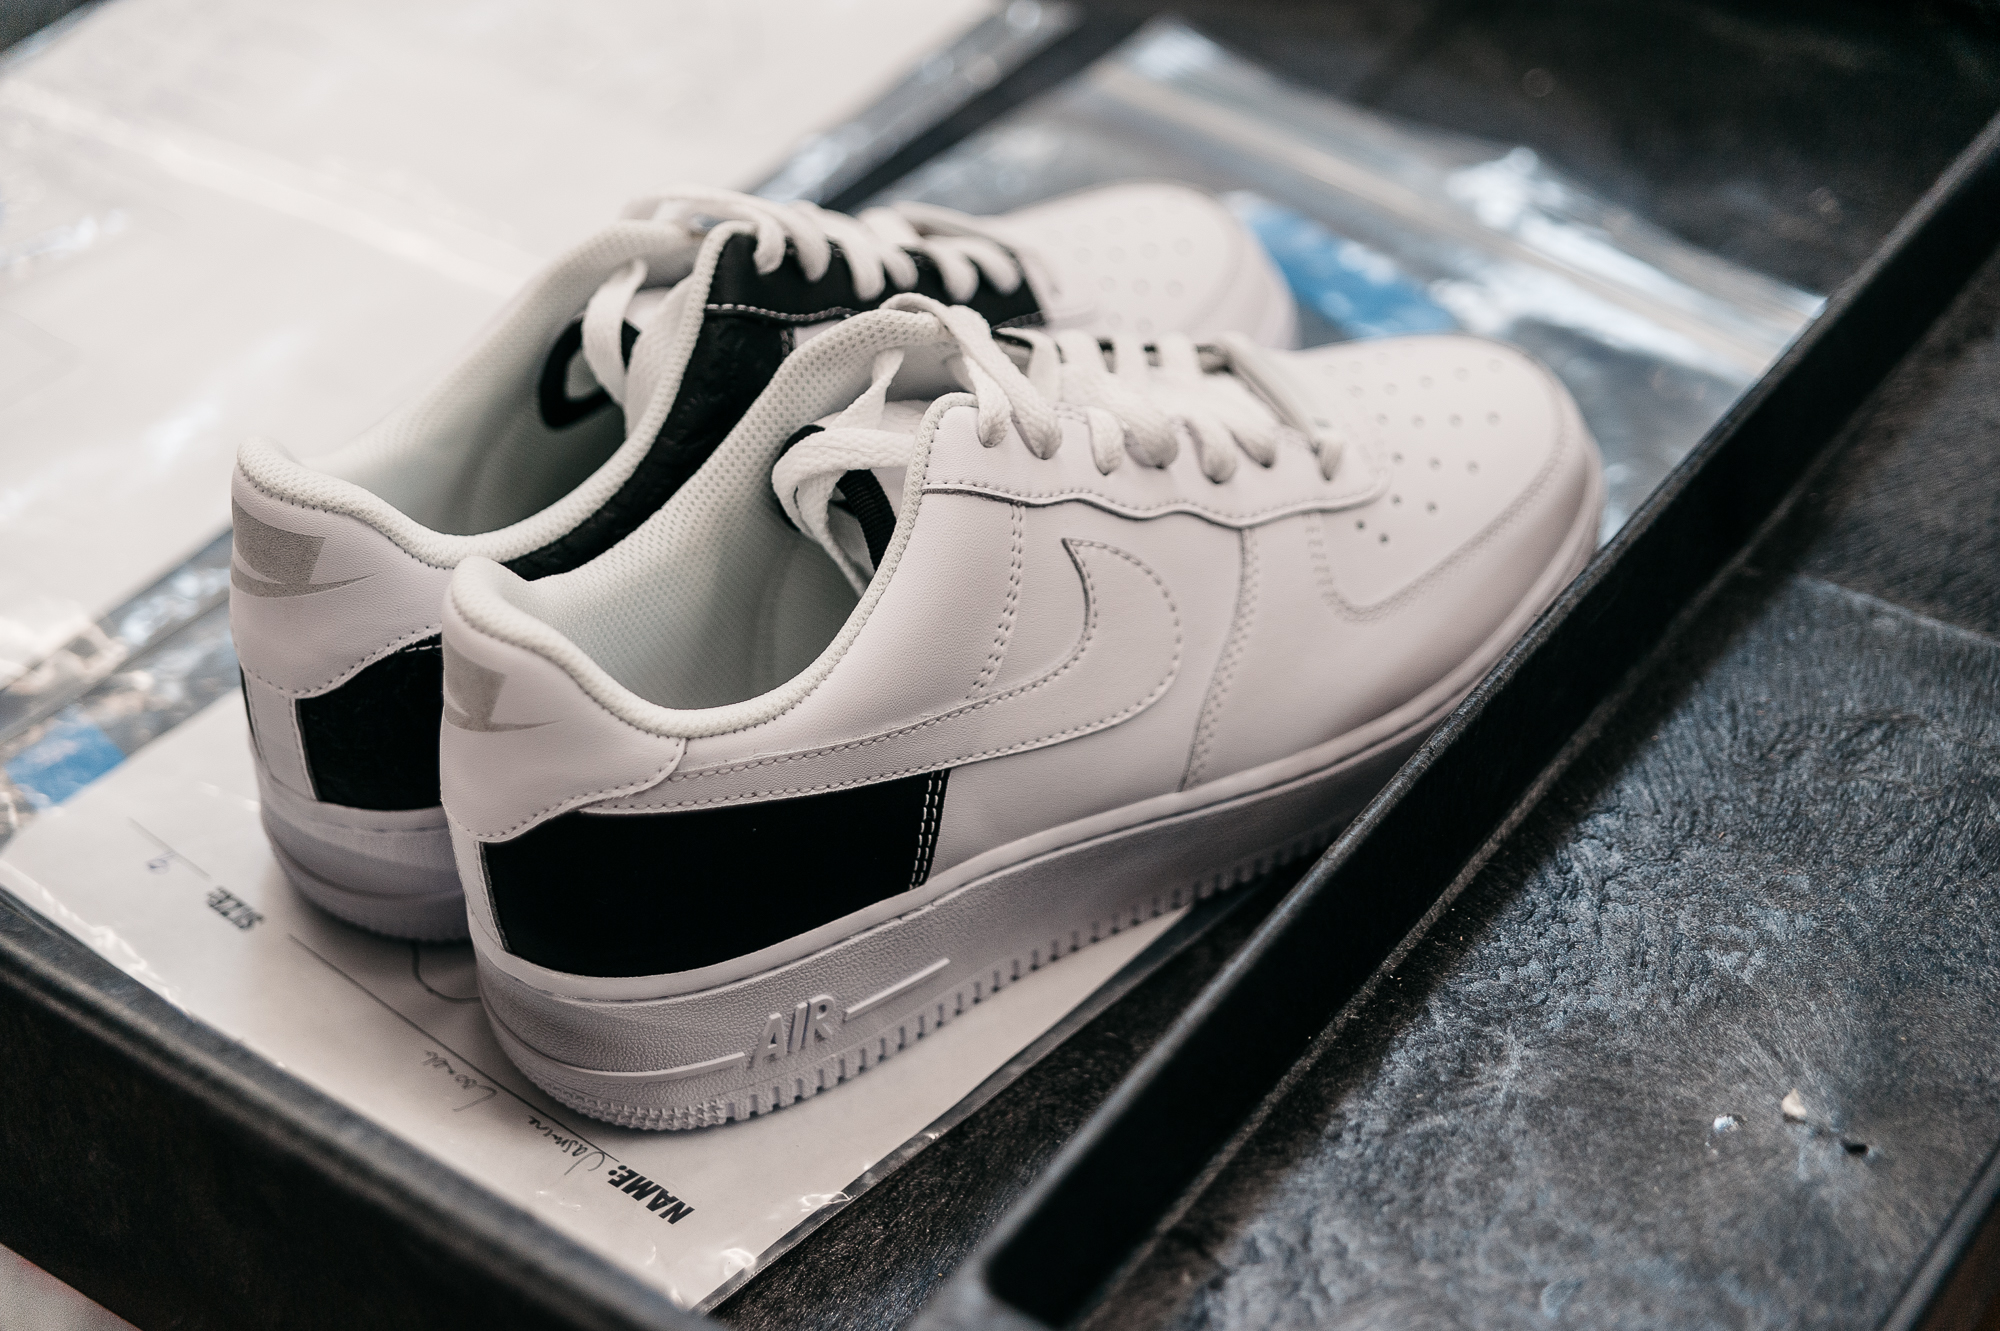 Nike Air Max 270 and Air Force 1 top sellers at US retailers in ...